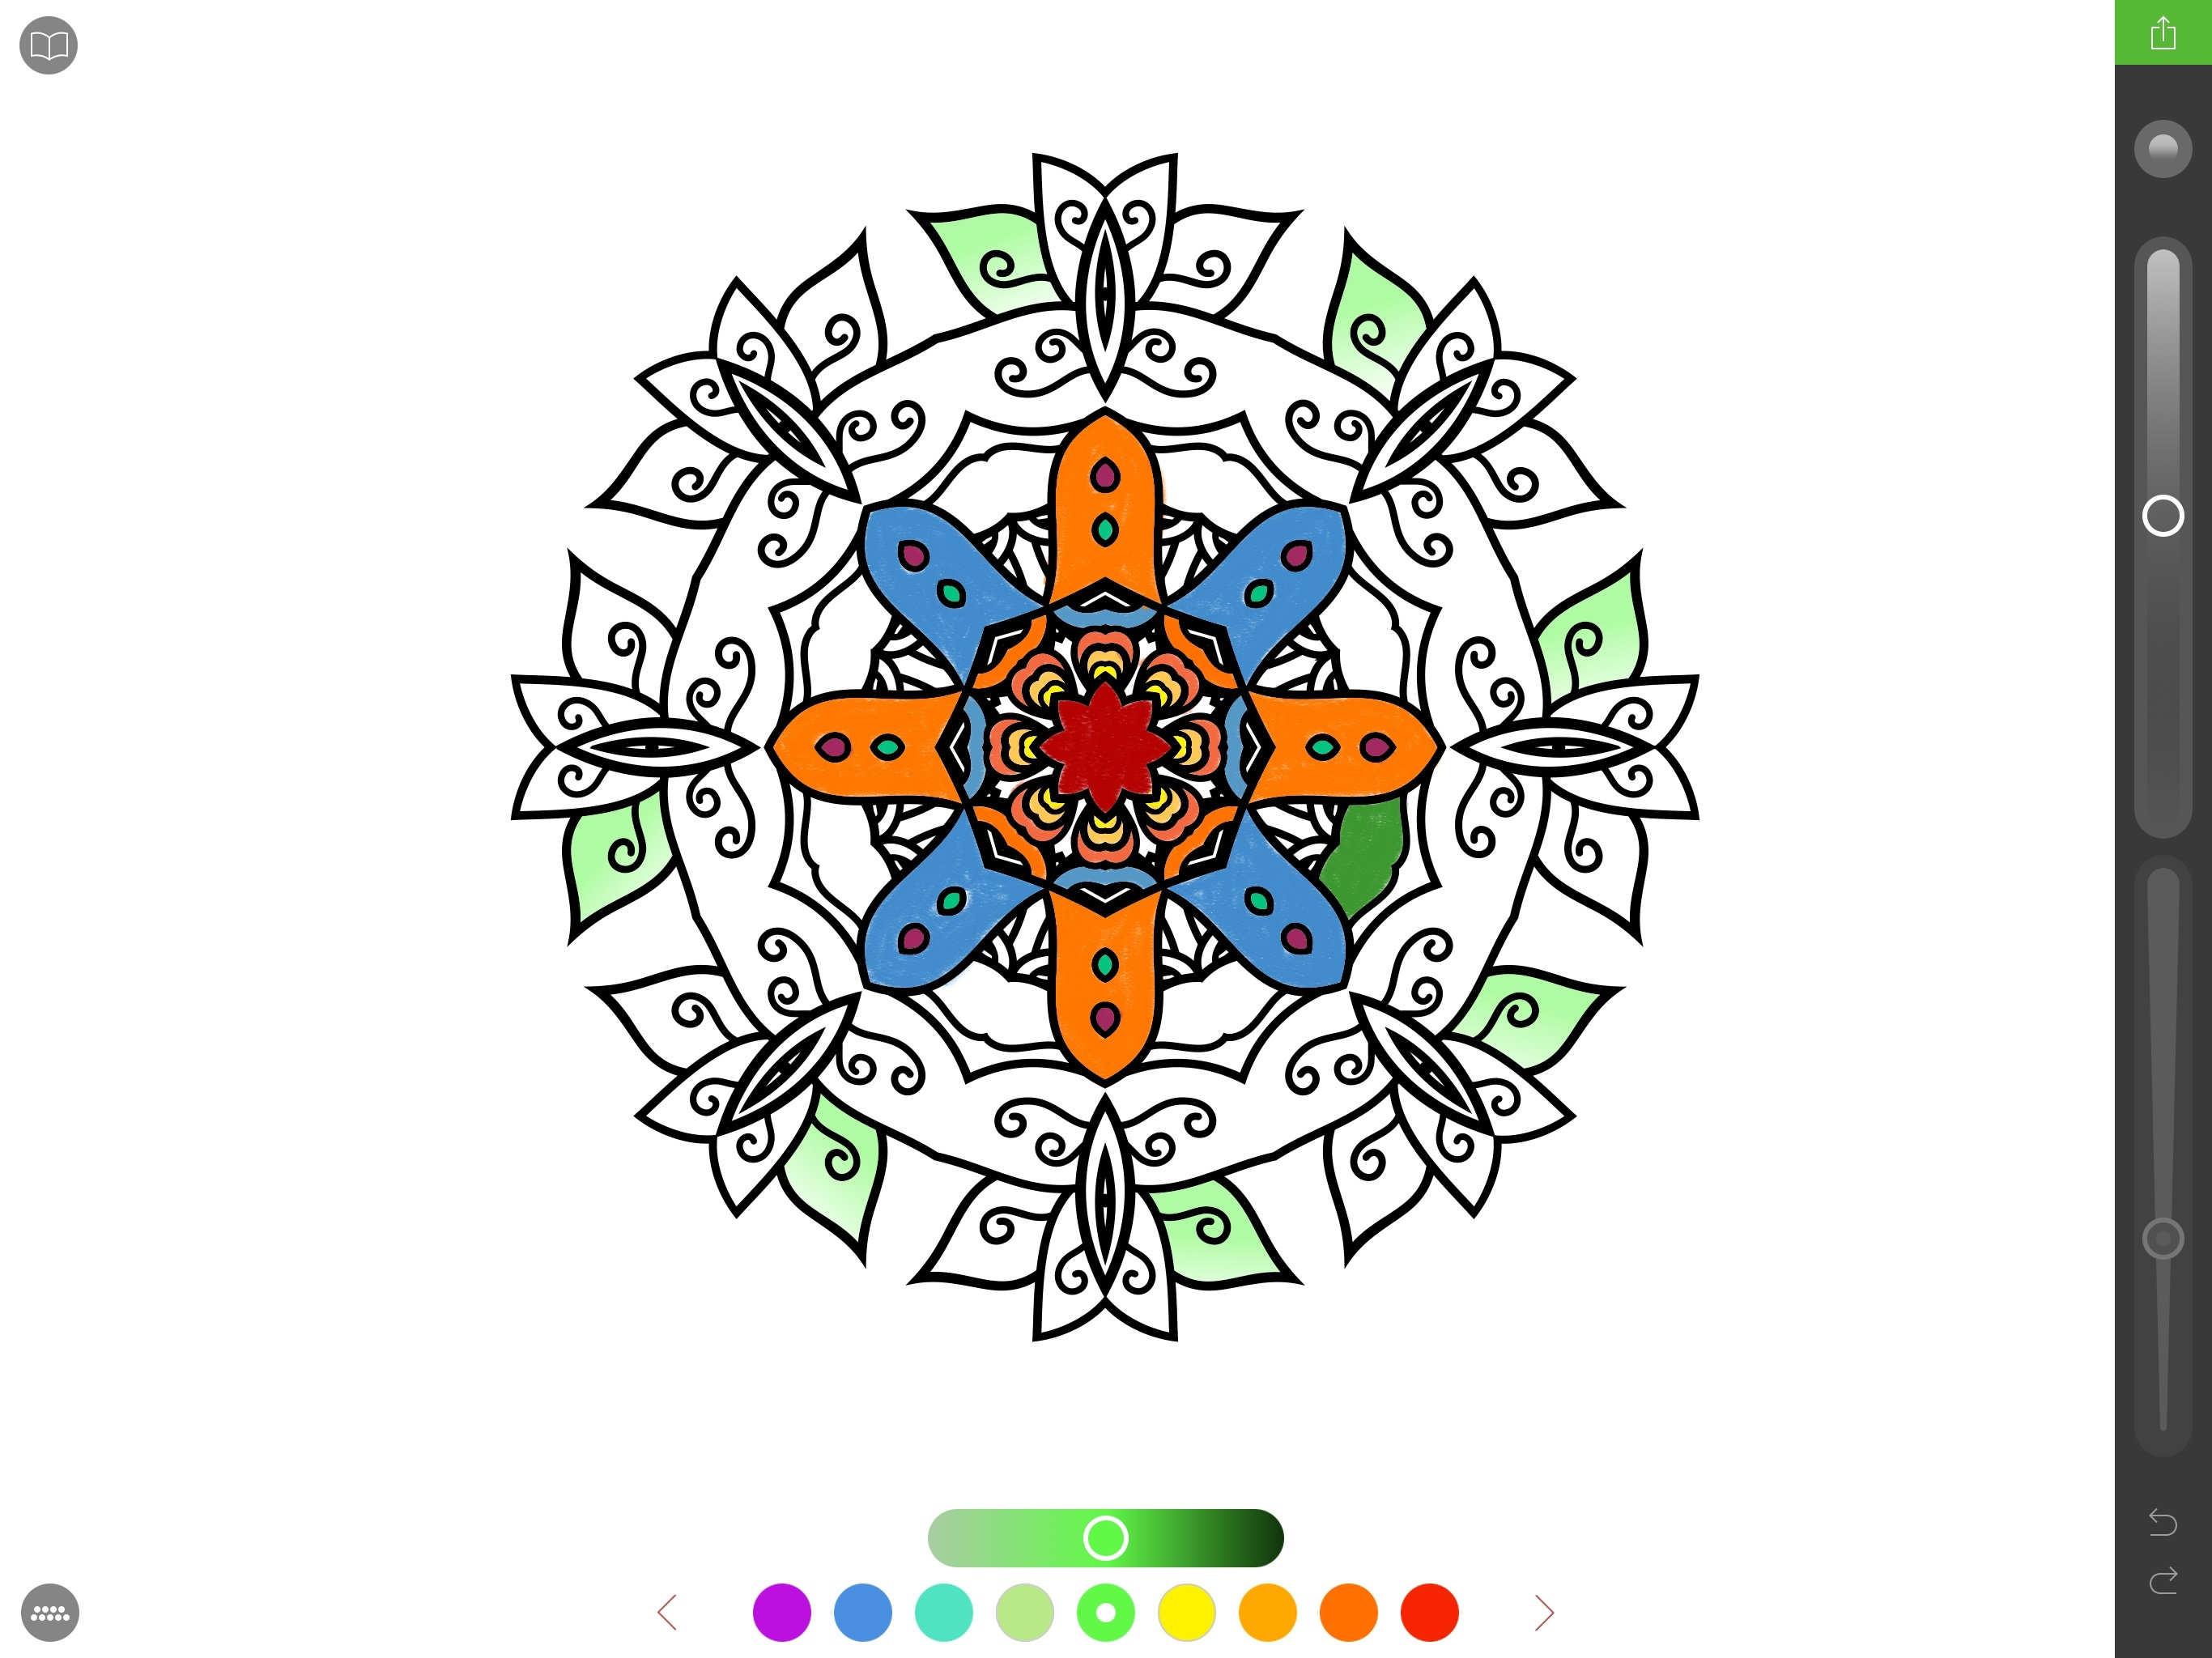 Coloring book software - Pigment Brings Adult Coloring Books To Ipad Pro With Apple Pencil Support